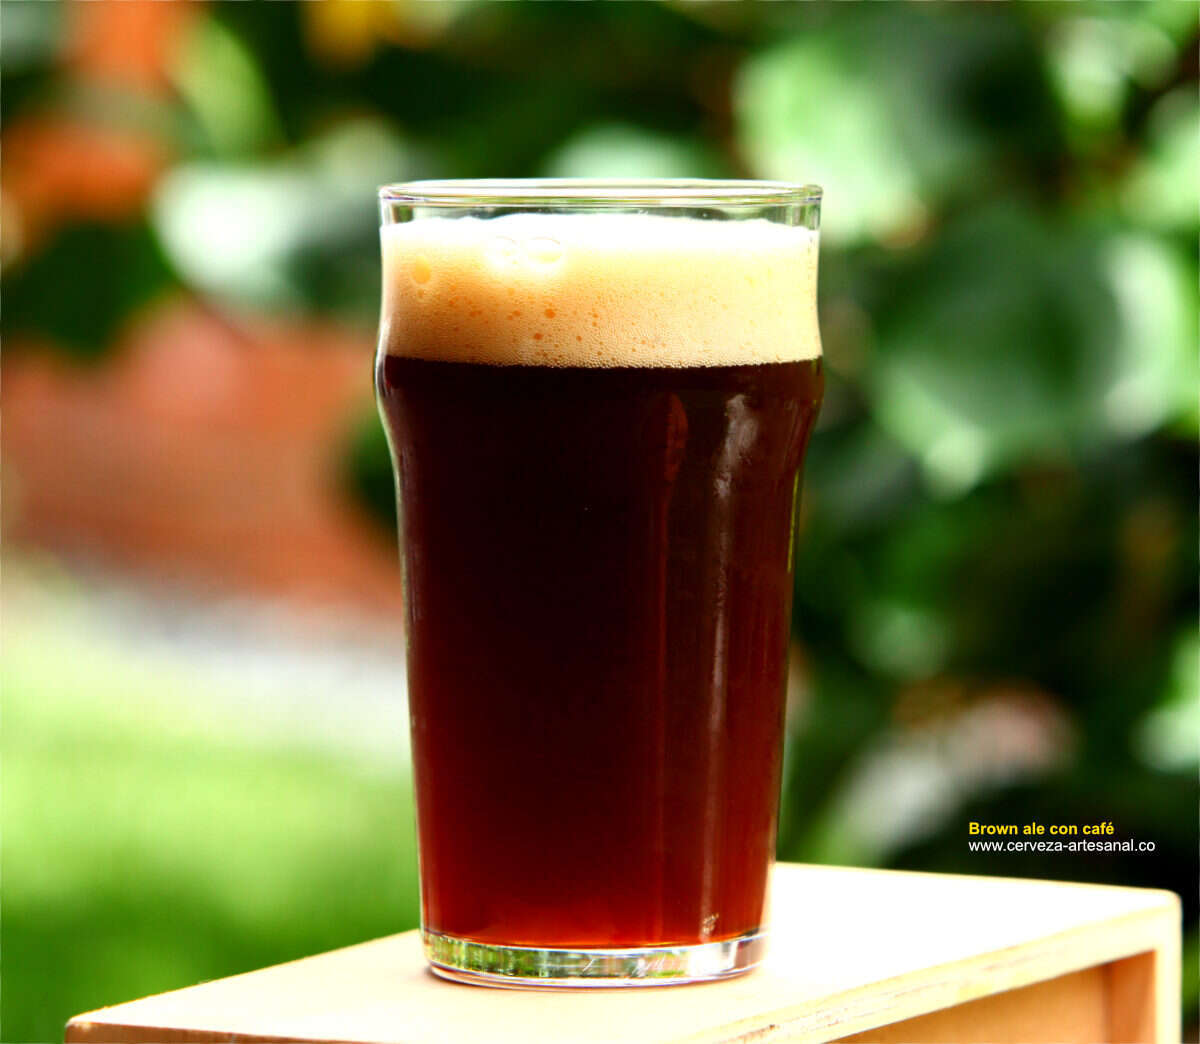 Brown ale con café